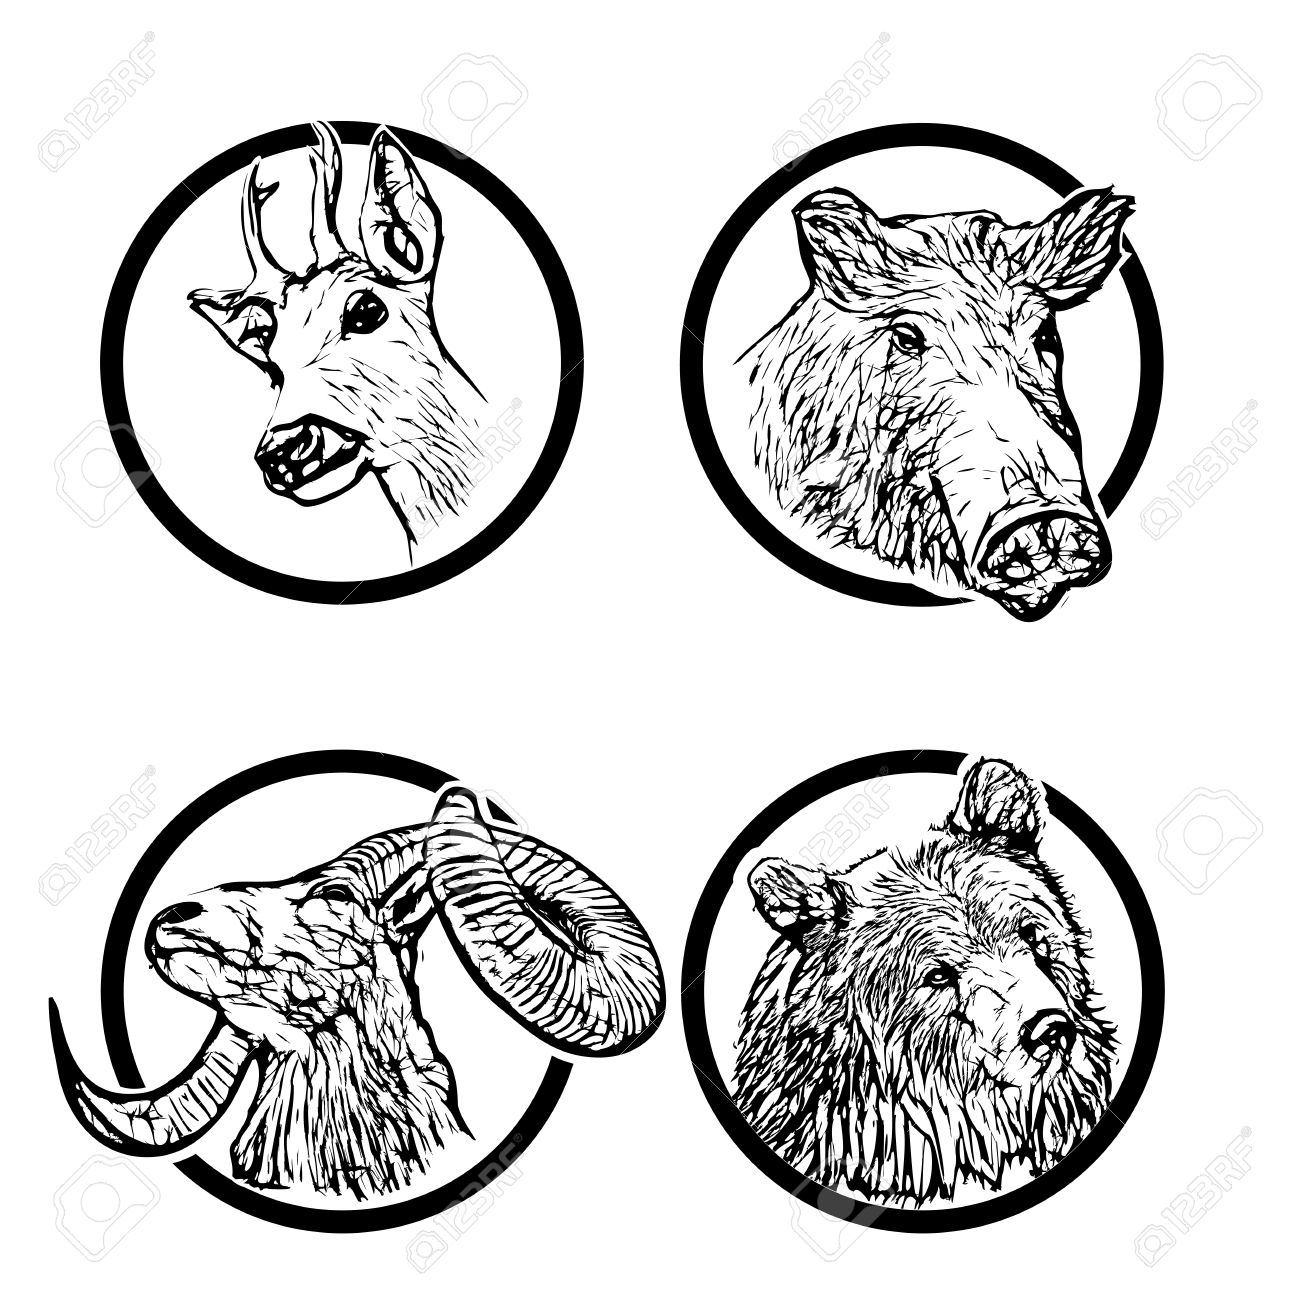 Four Forest Animals In The Rings Royalty Free Cliparts, Vectors.